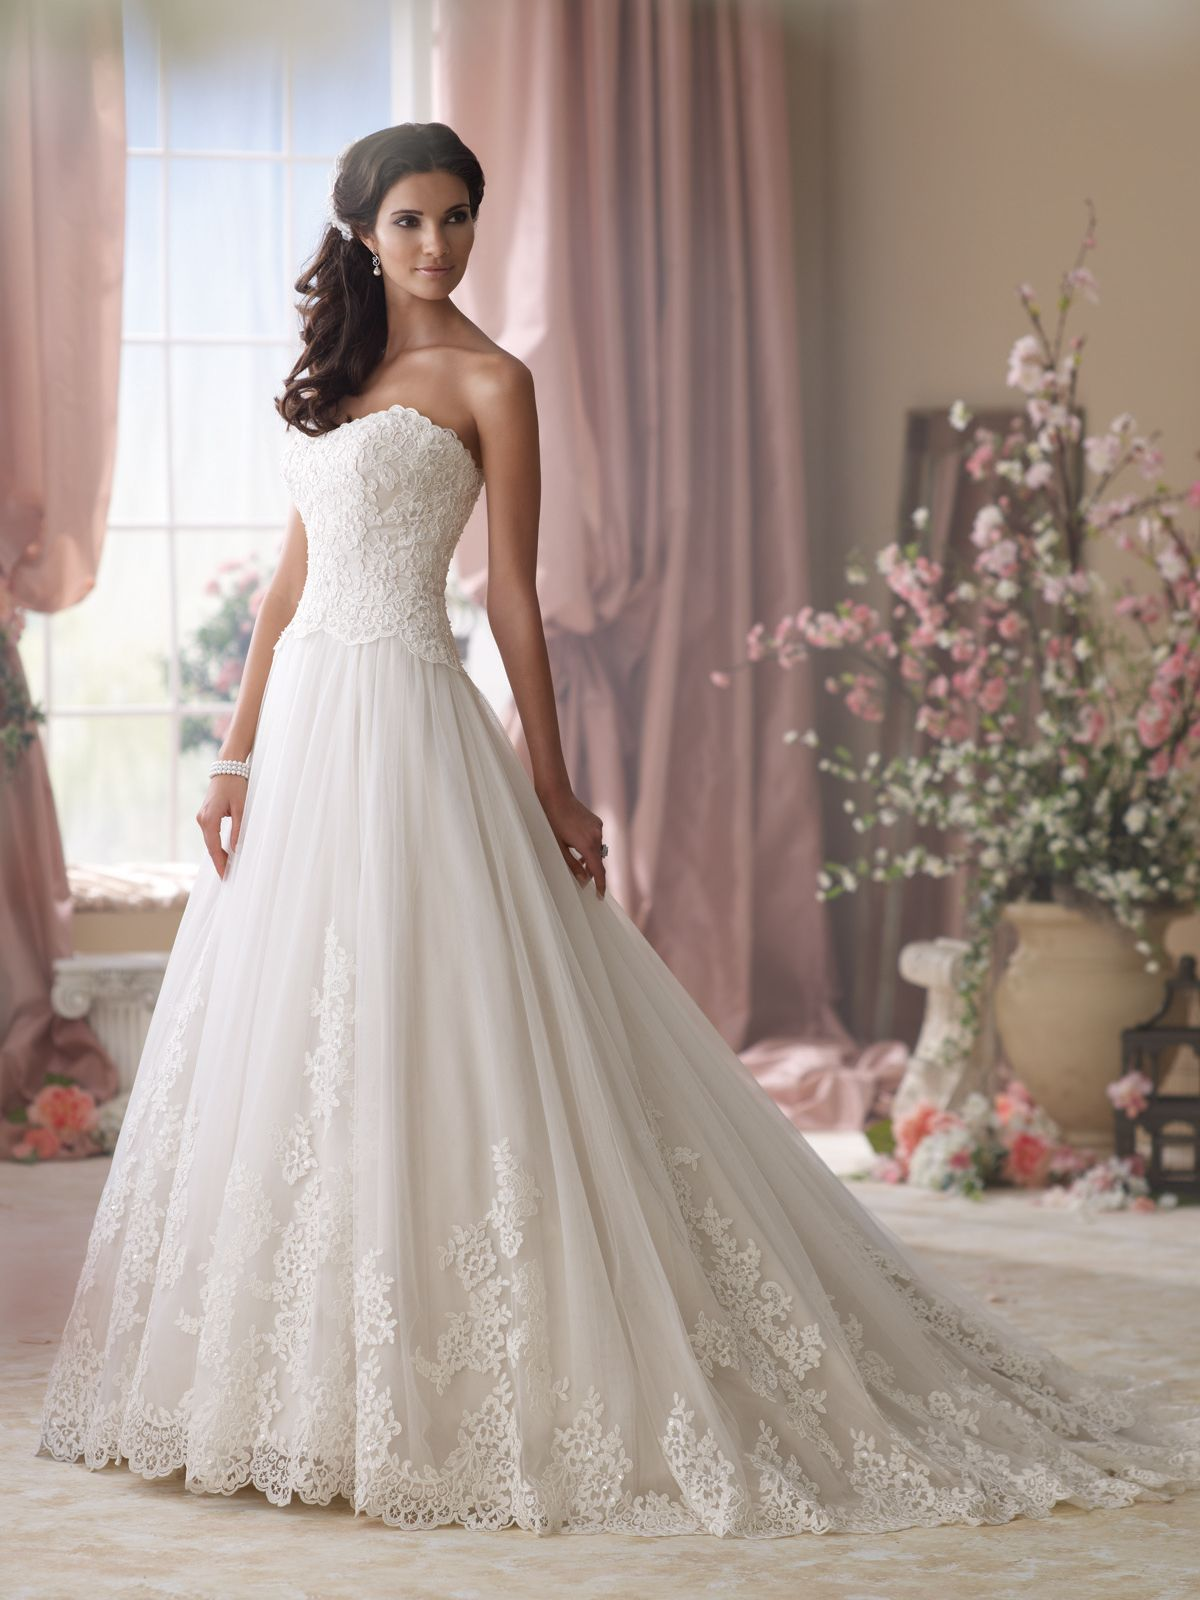 pics of wedding dresses